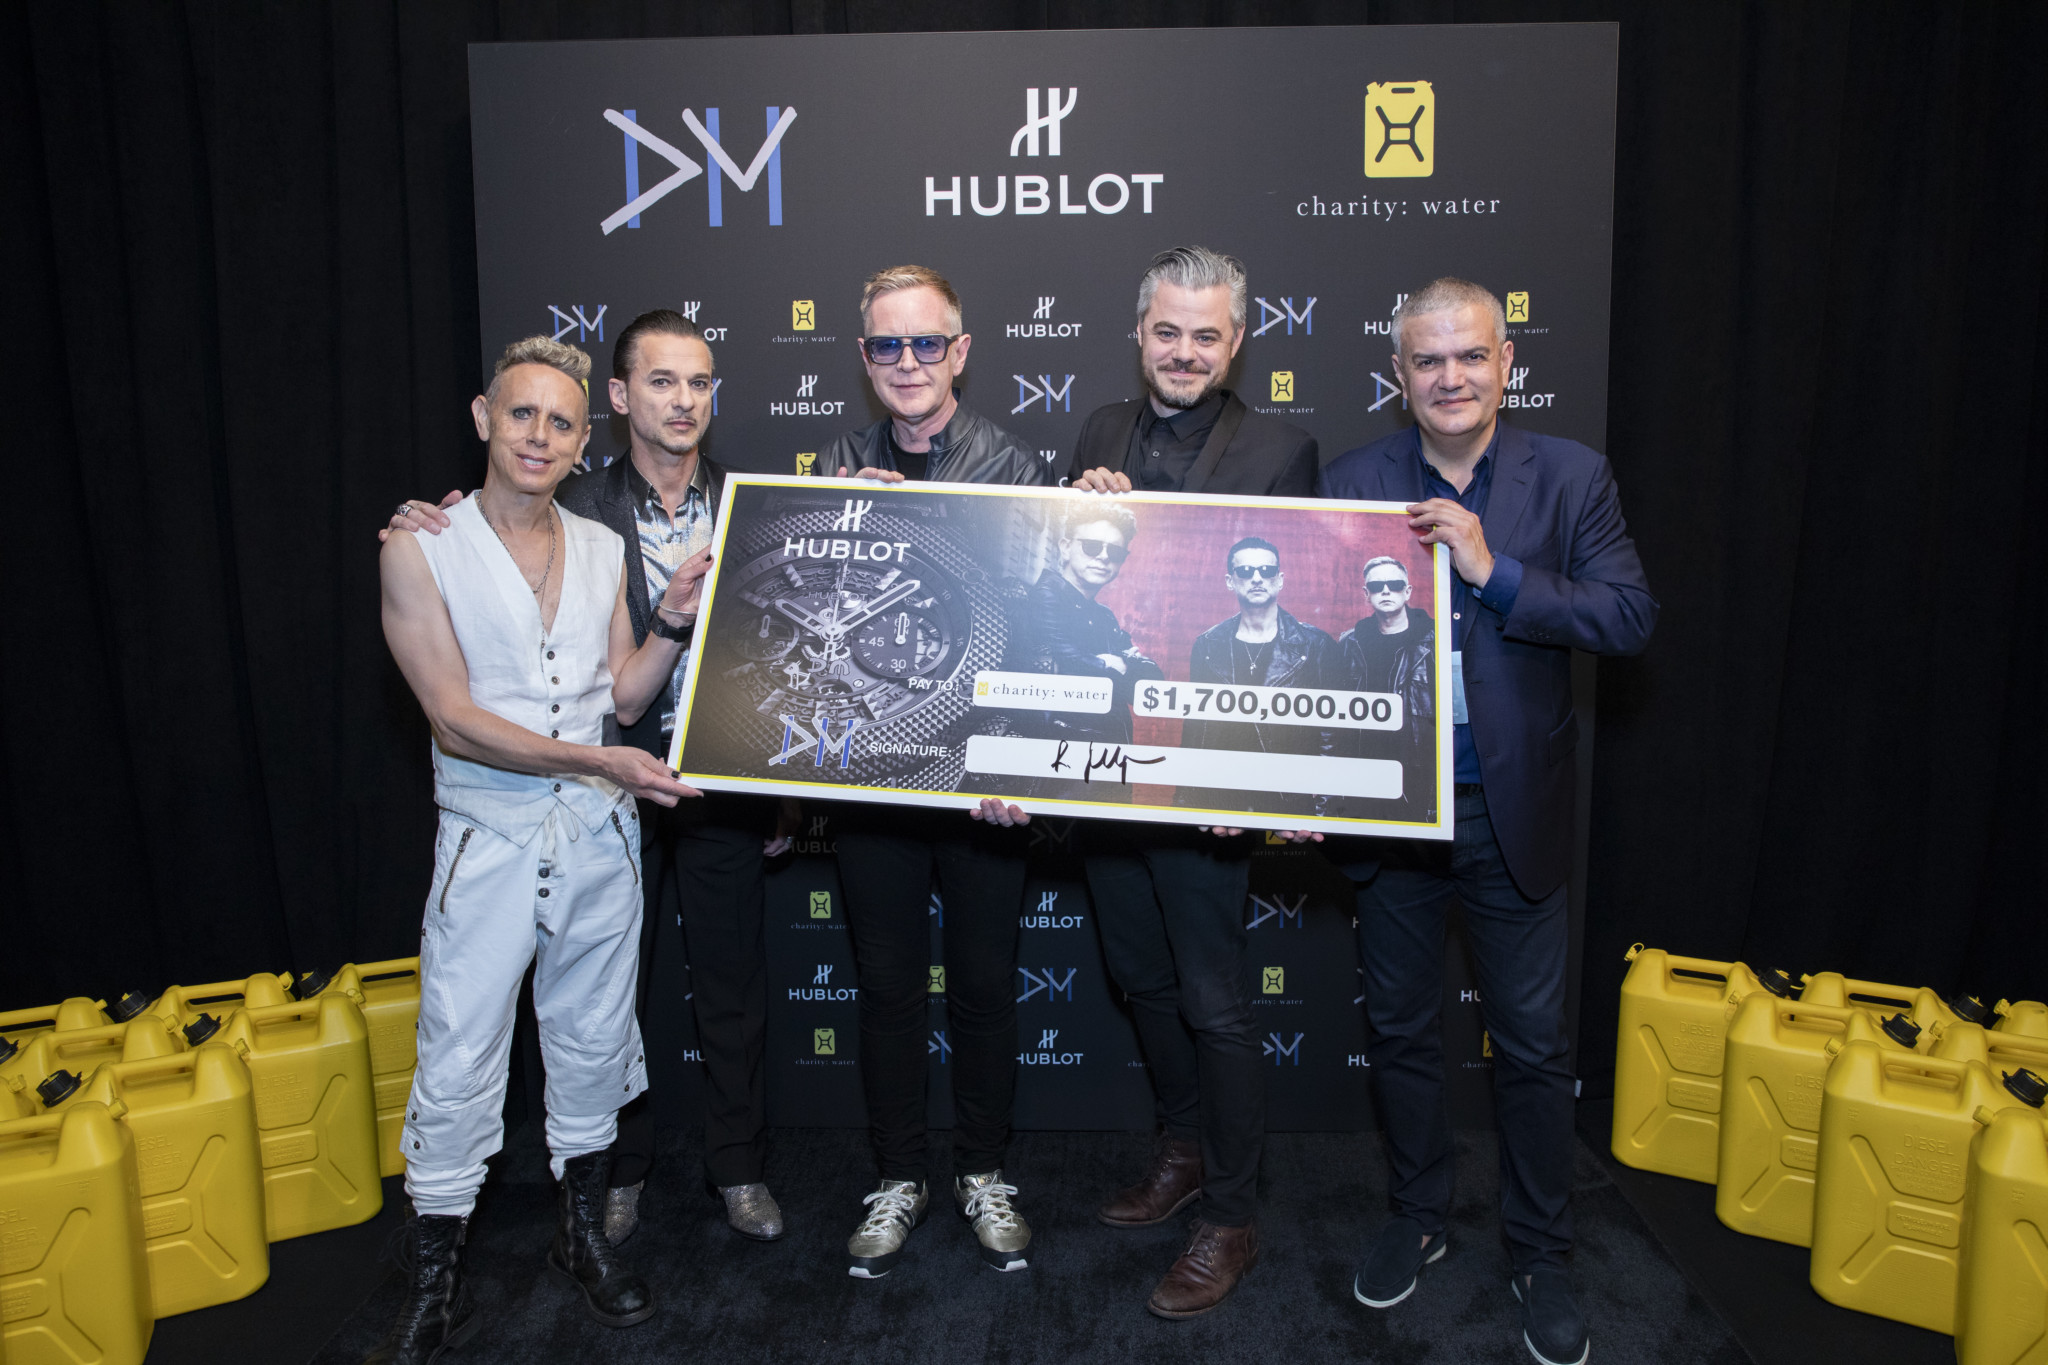 Hublot and Depeche Mode raise $1.7 million for water charity